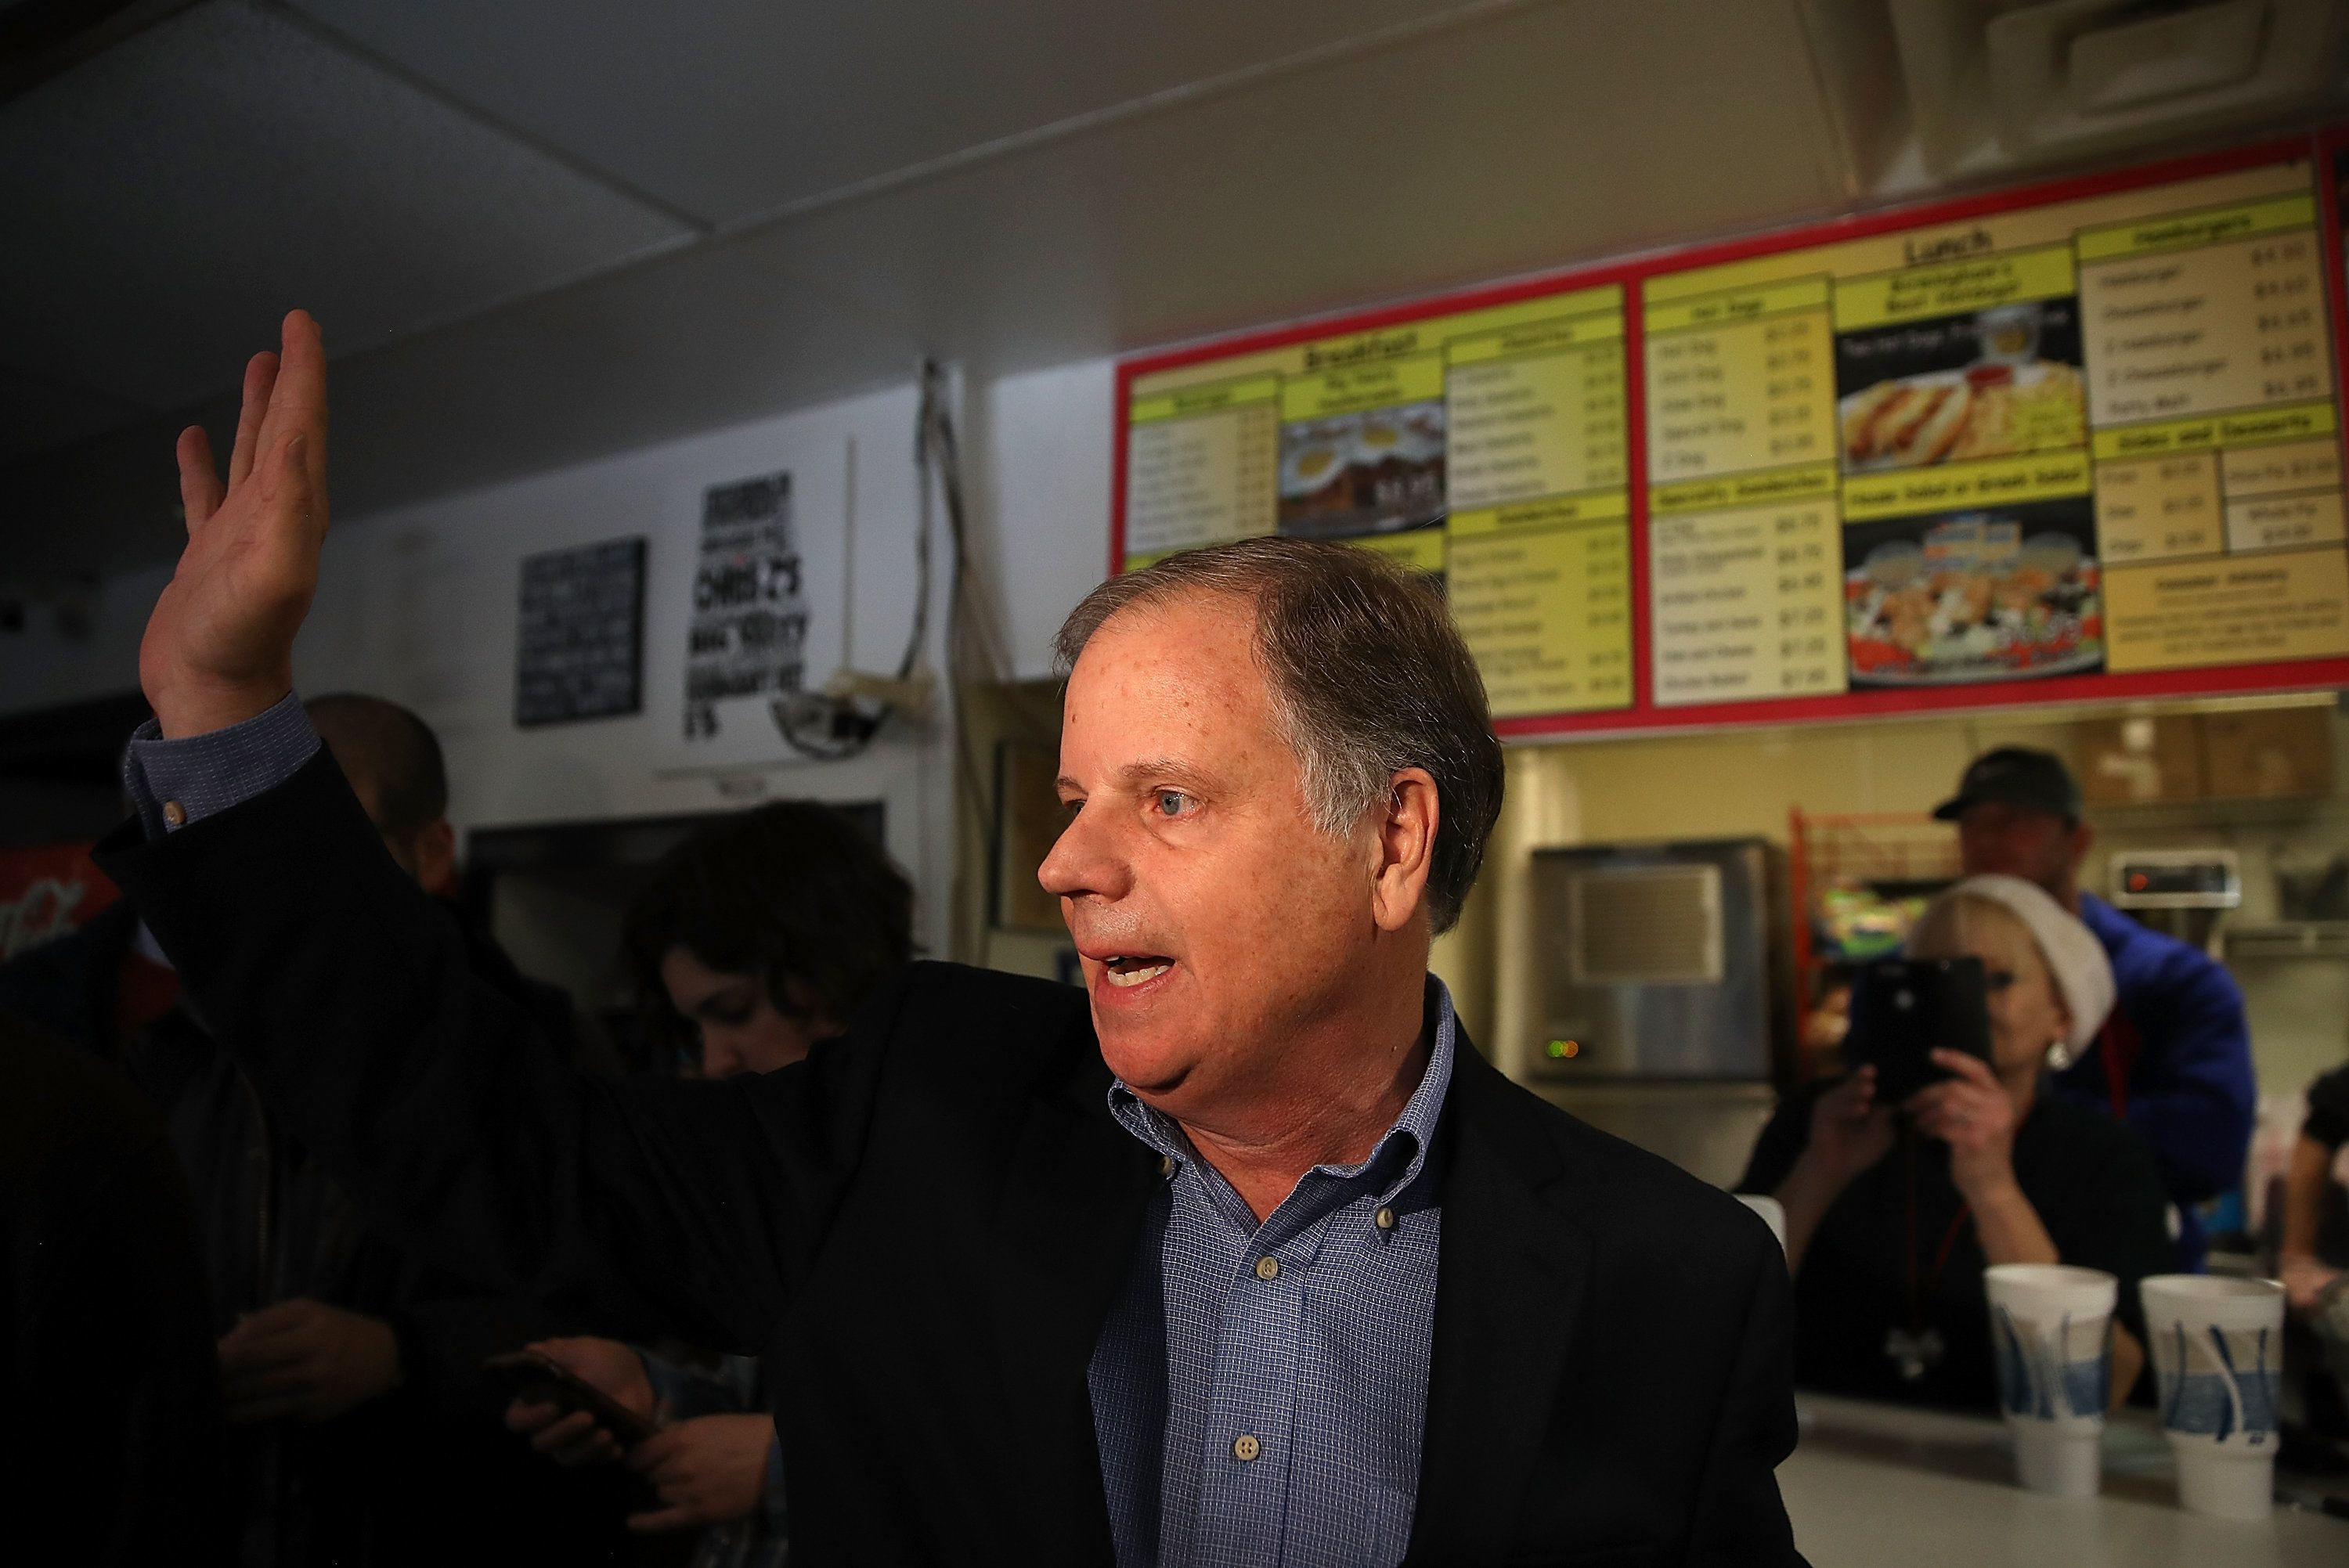 Democratic Senate candidate Doug Jones waves to reporters as he leaves a restaurant in Birmingham, Alabama, Dec. 11, 2017.